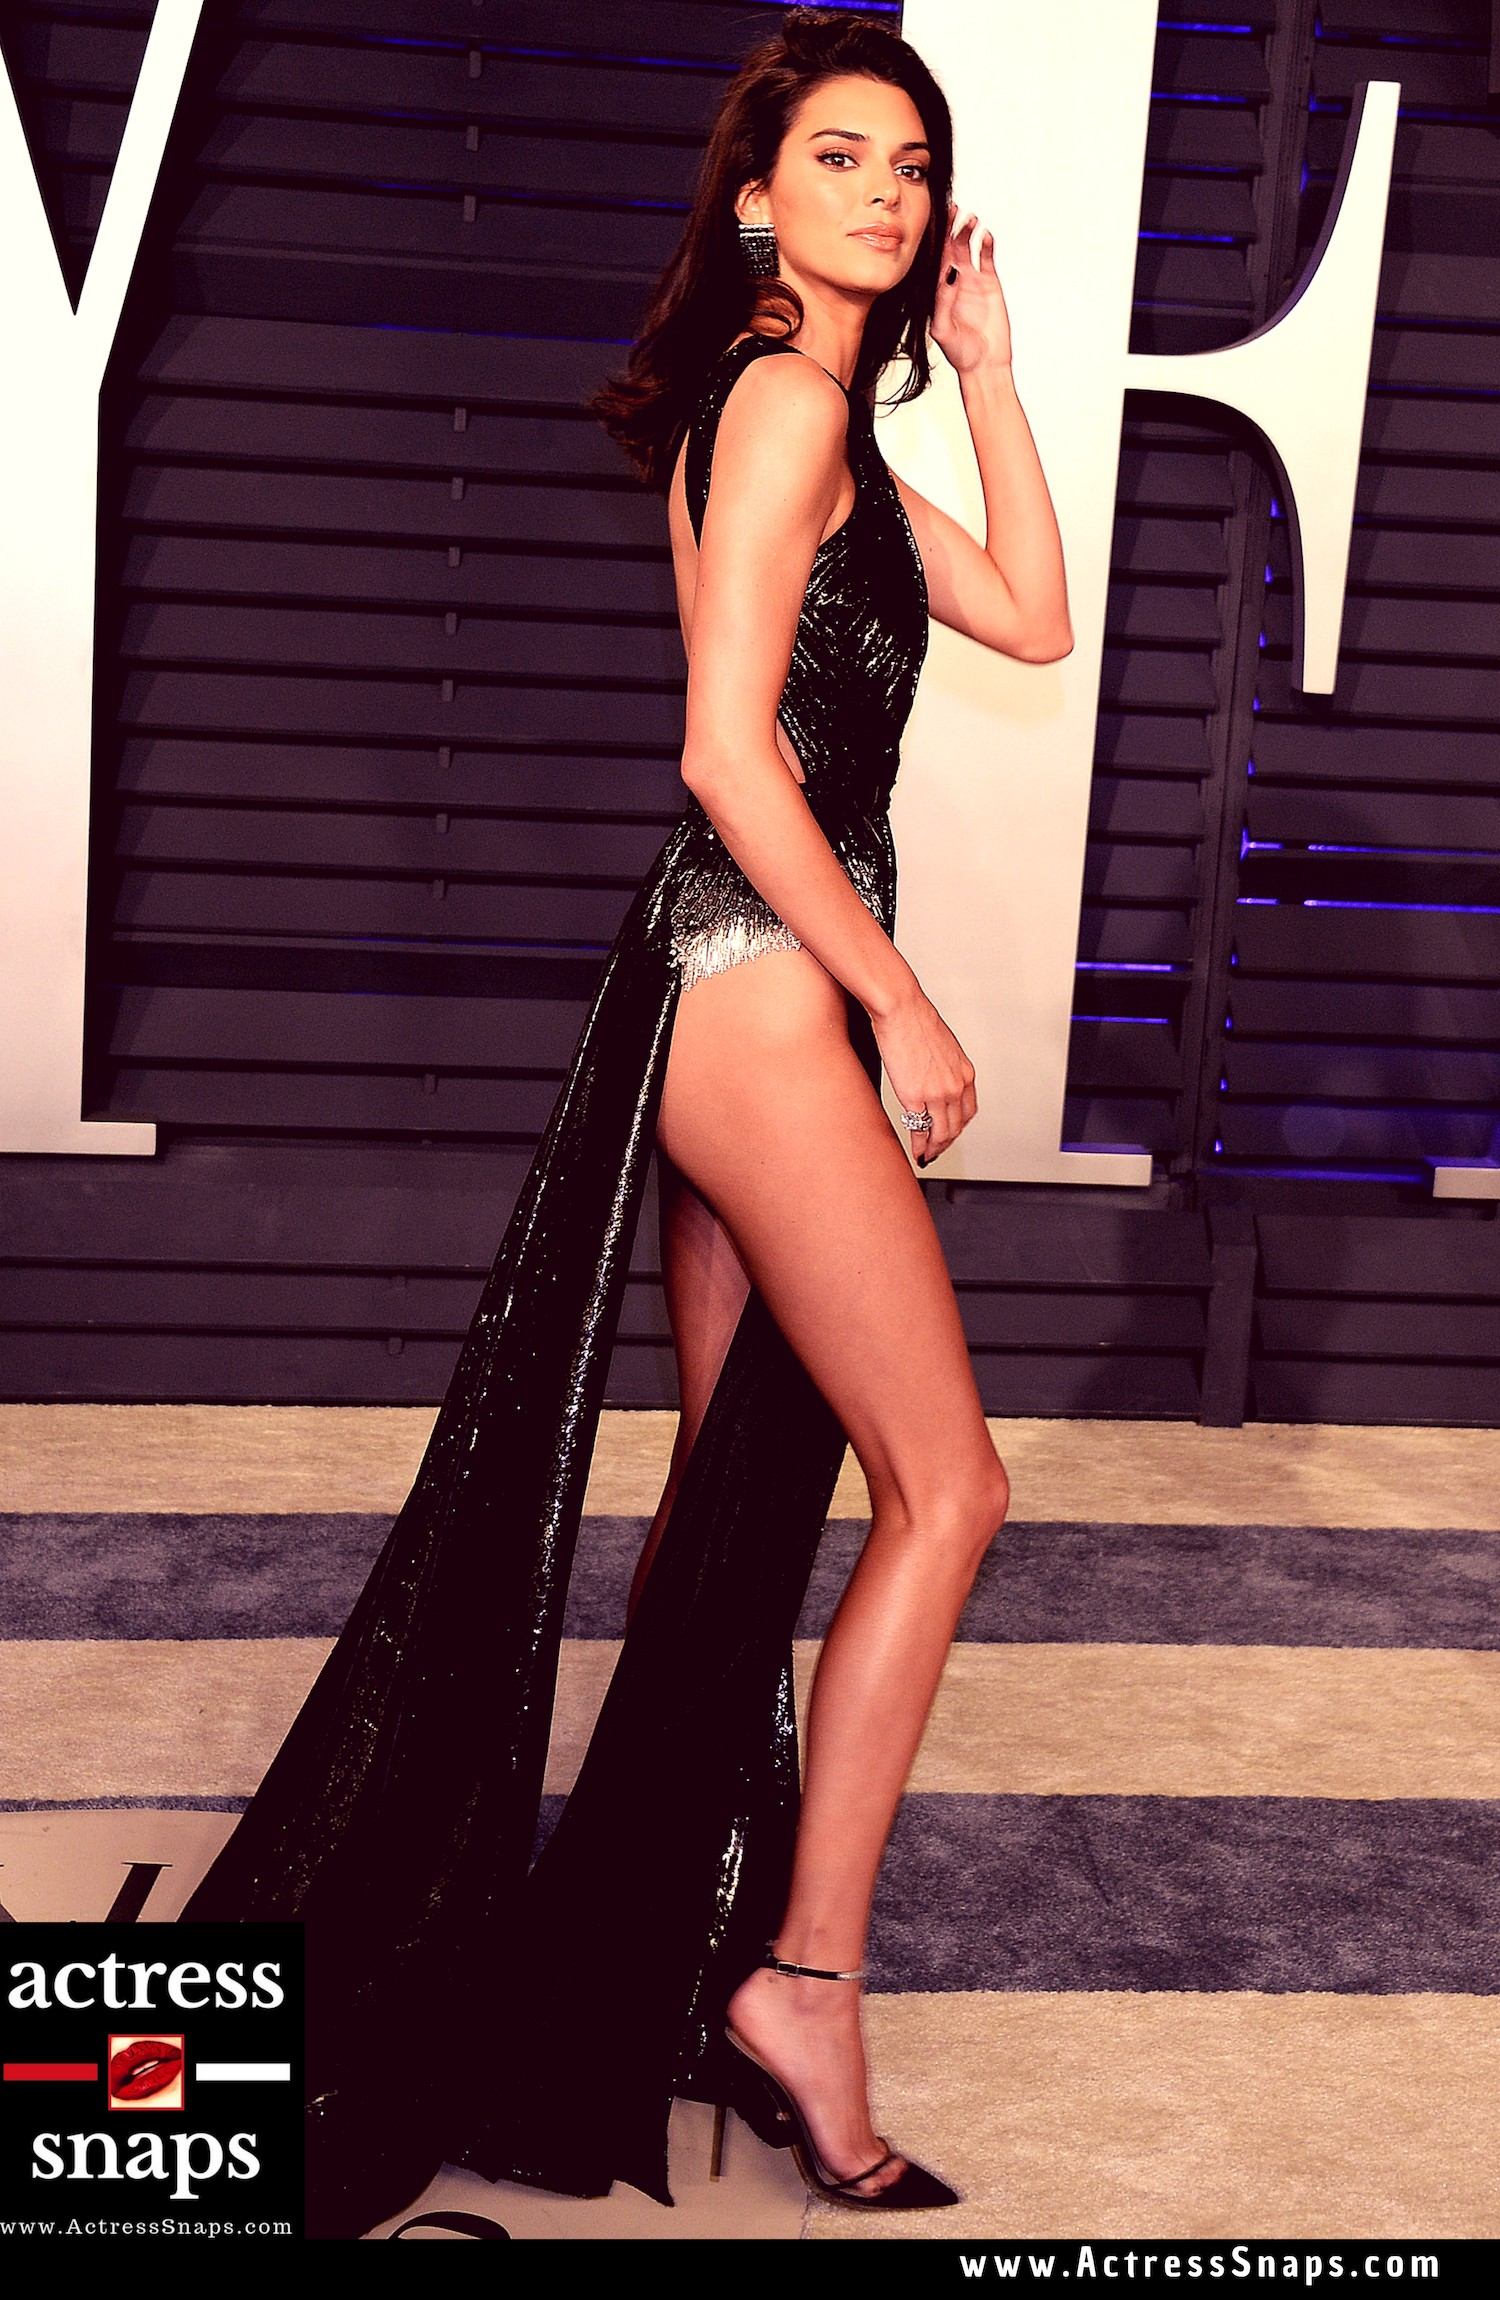 Kendall Jenner - 2019 Oscars Vanity Fair Party - Sexy Actress Pictures | Hot Actress Pictures - ActressSnaps.com